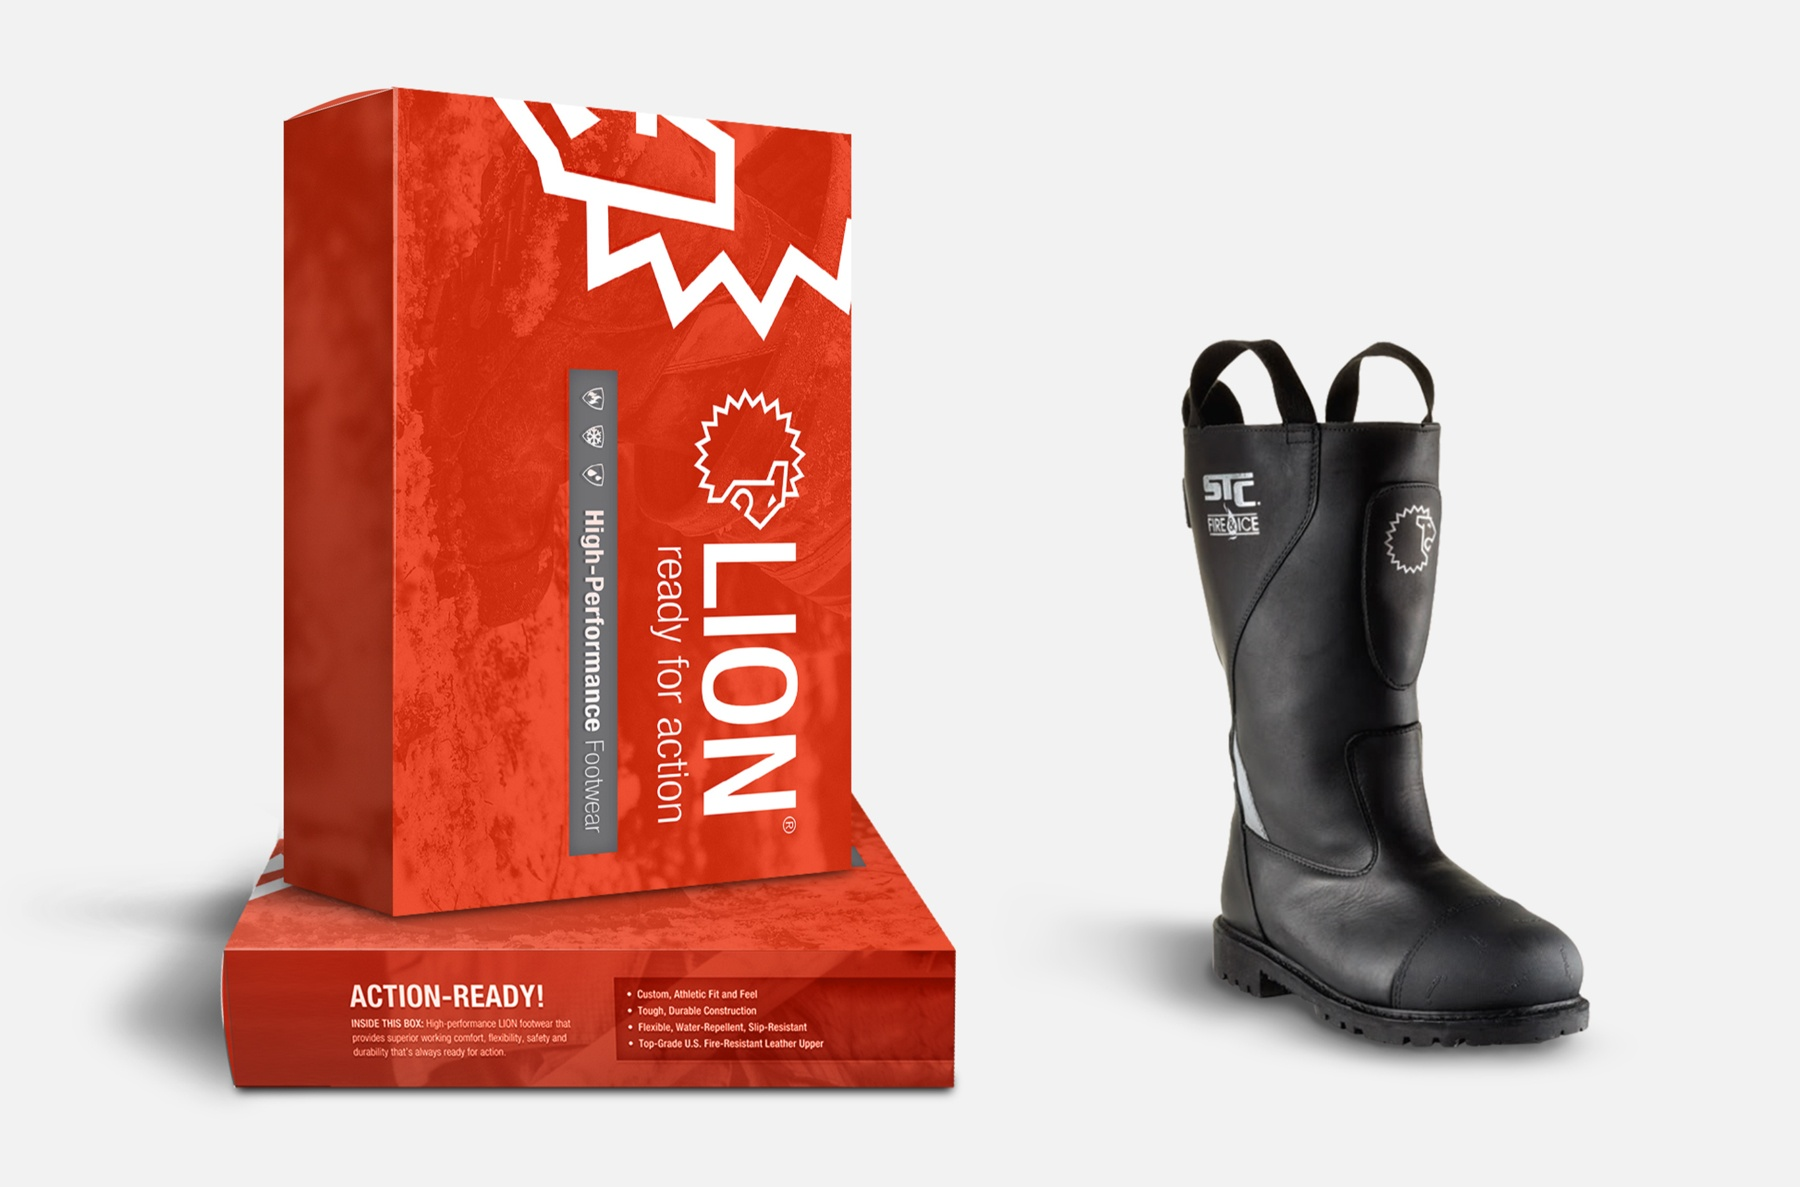 A photo of the LION boot next to the box package design